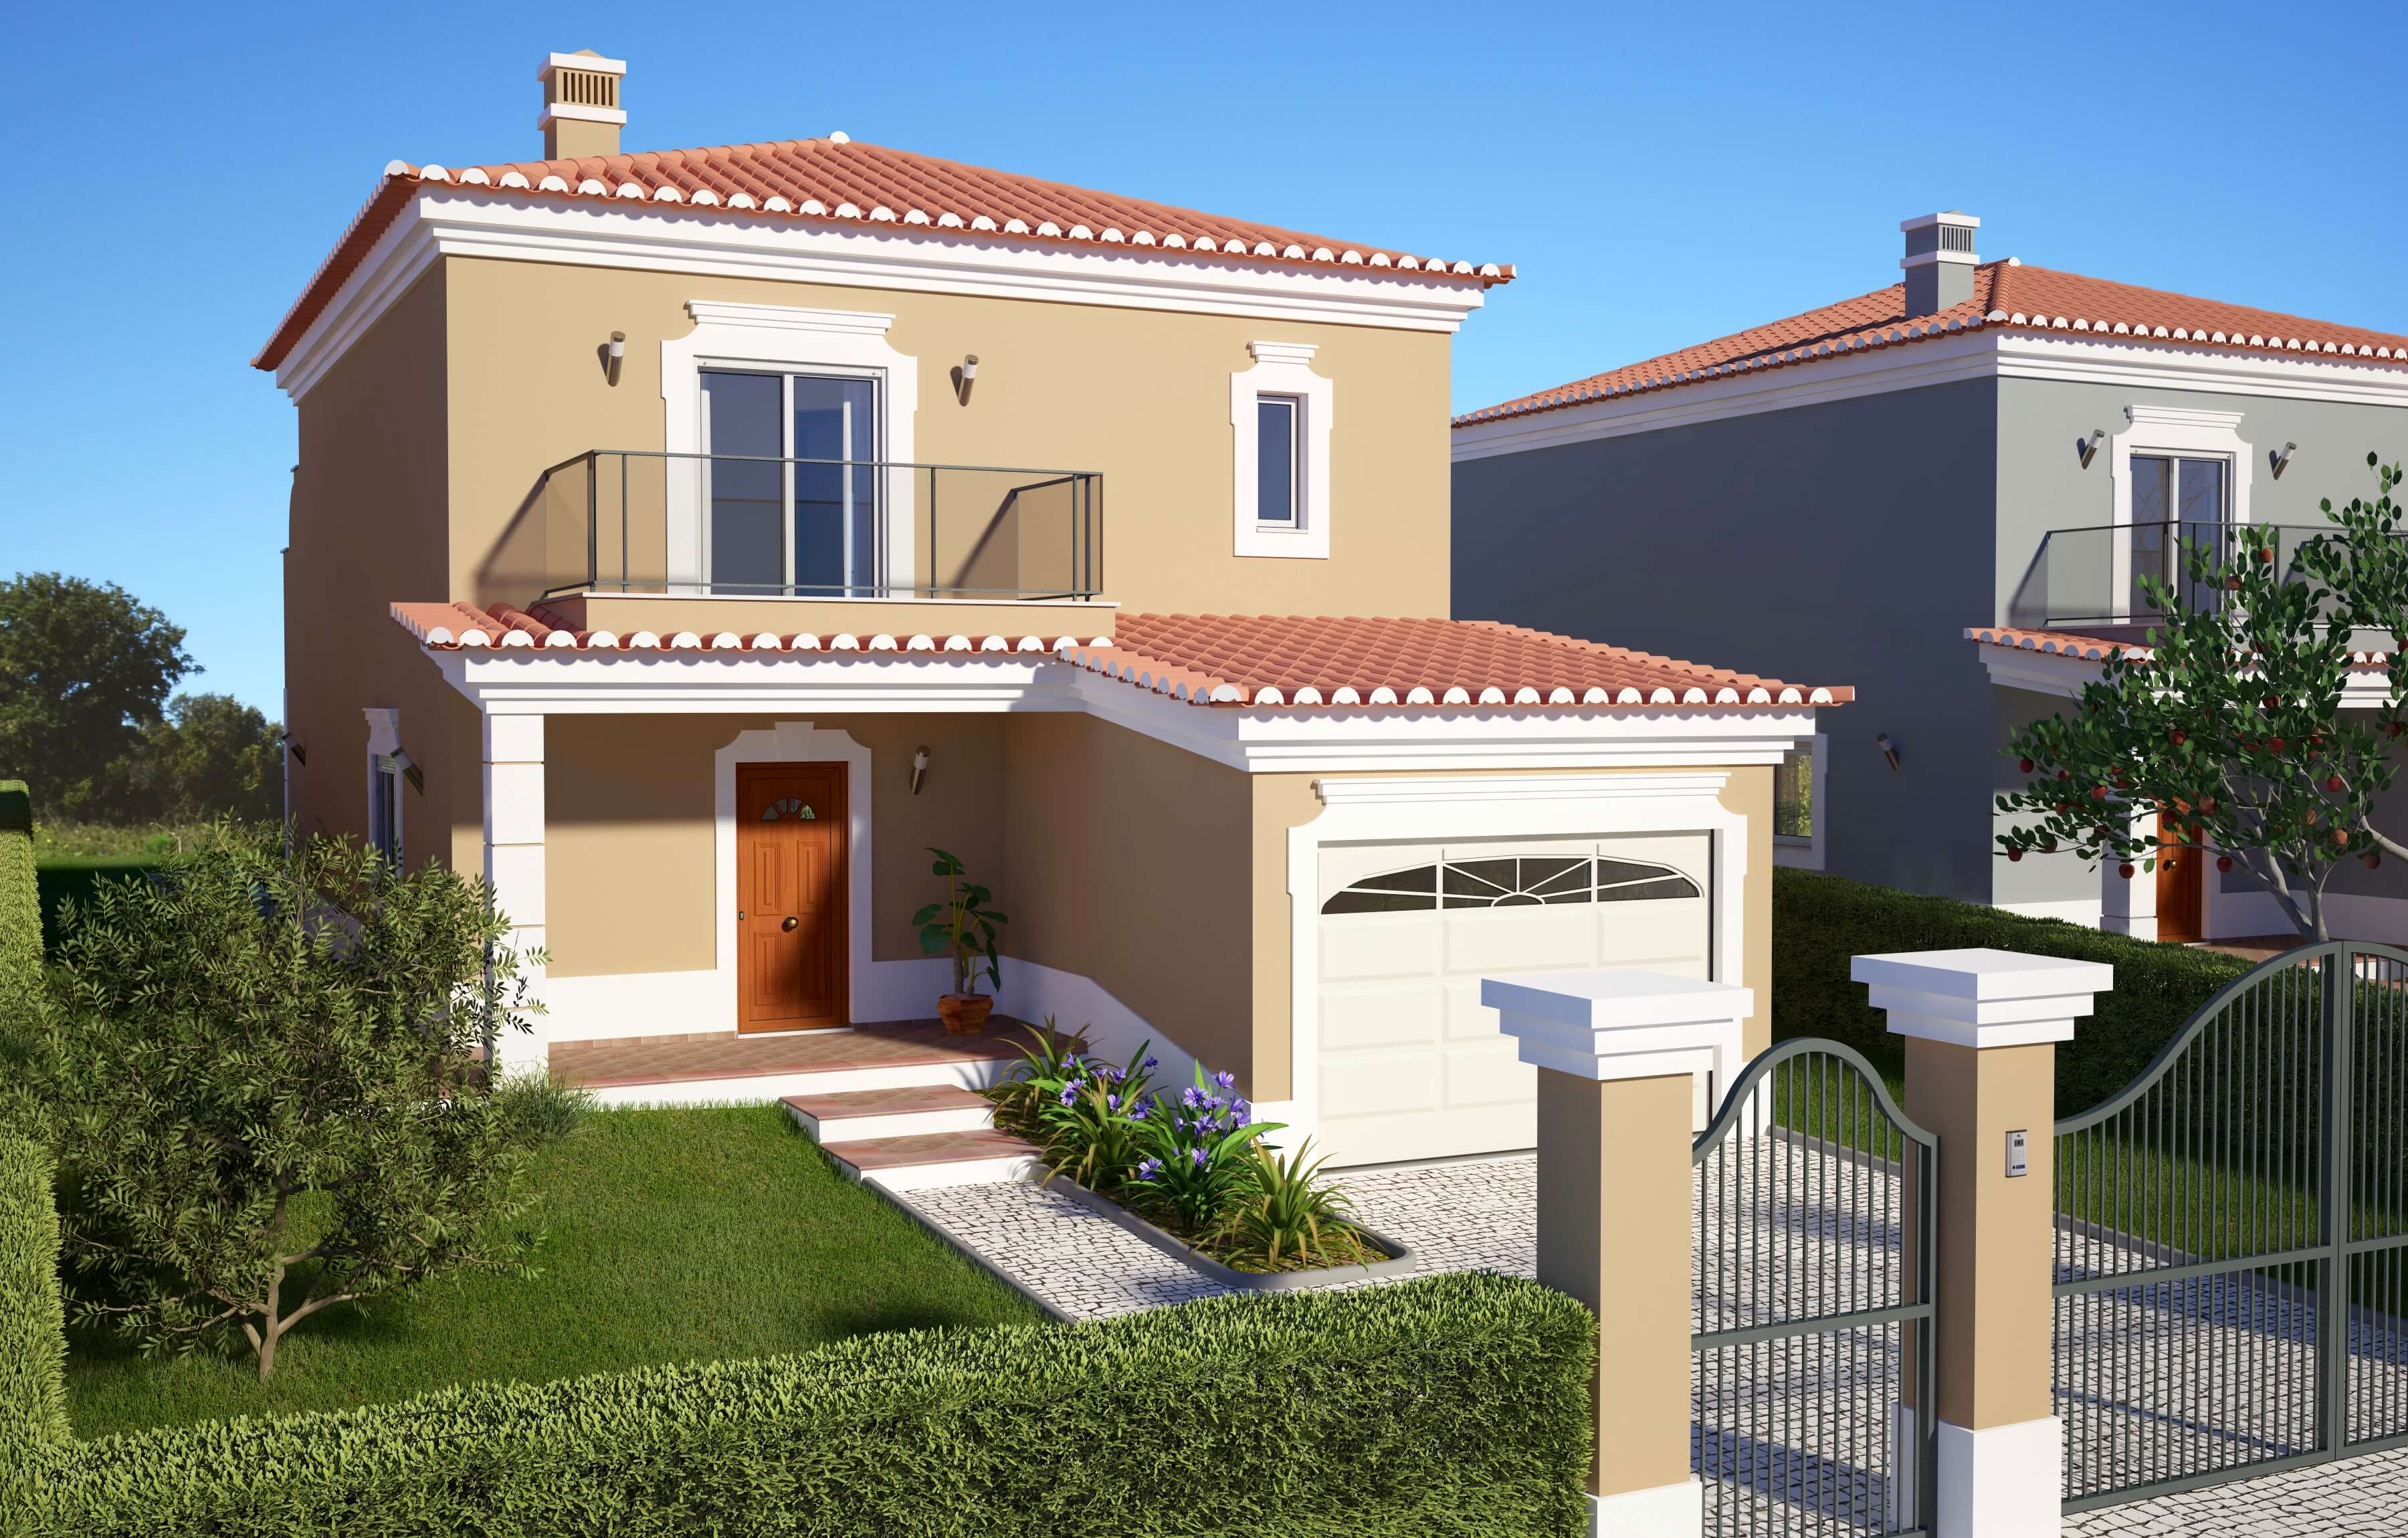 Spacious 3 Bedroom villa with garage Contemporary 3 Bedroom villa is Contemporary 3 Bedroom villa in Golf Resort  - Algarve